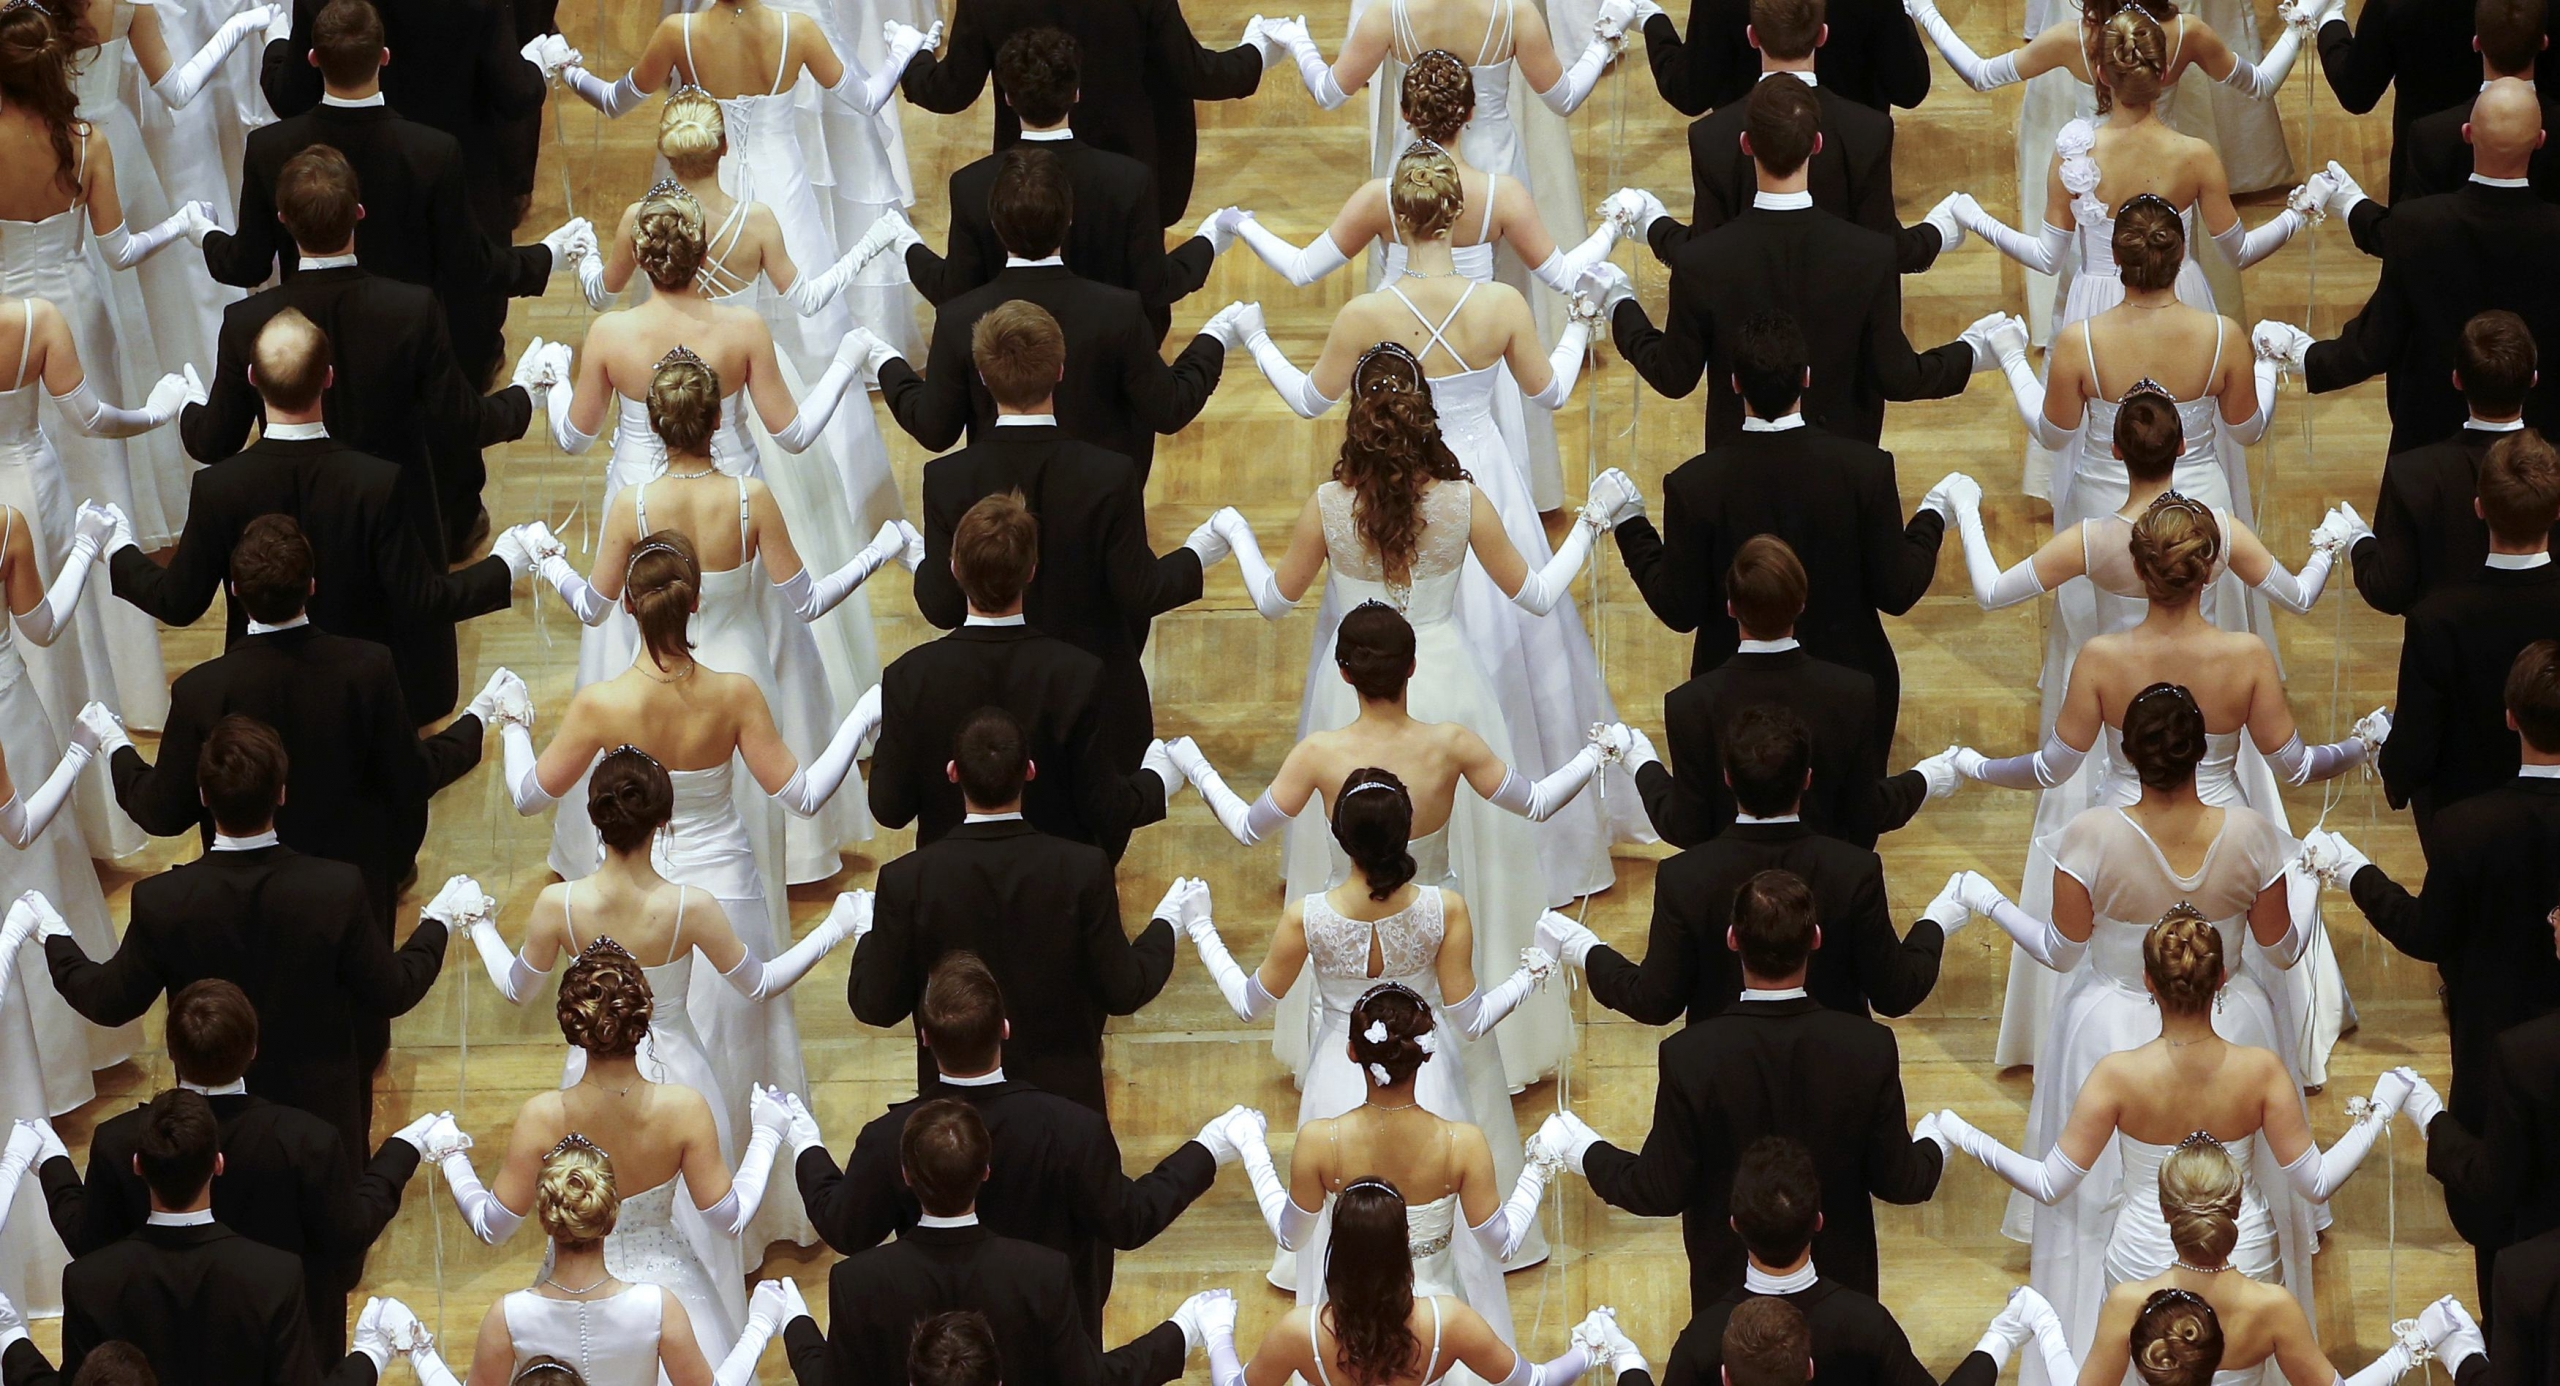 Difference Between A Cotillion and a Debutante Ball